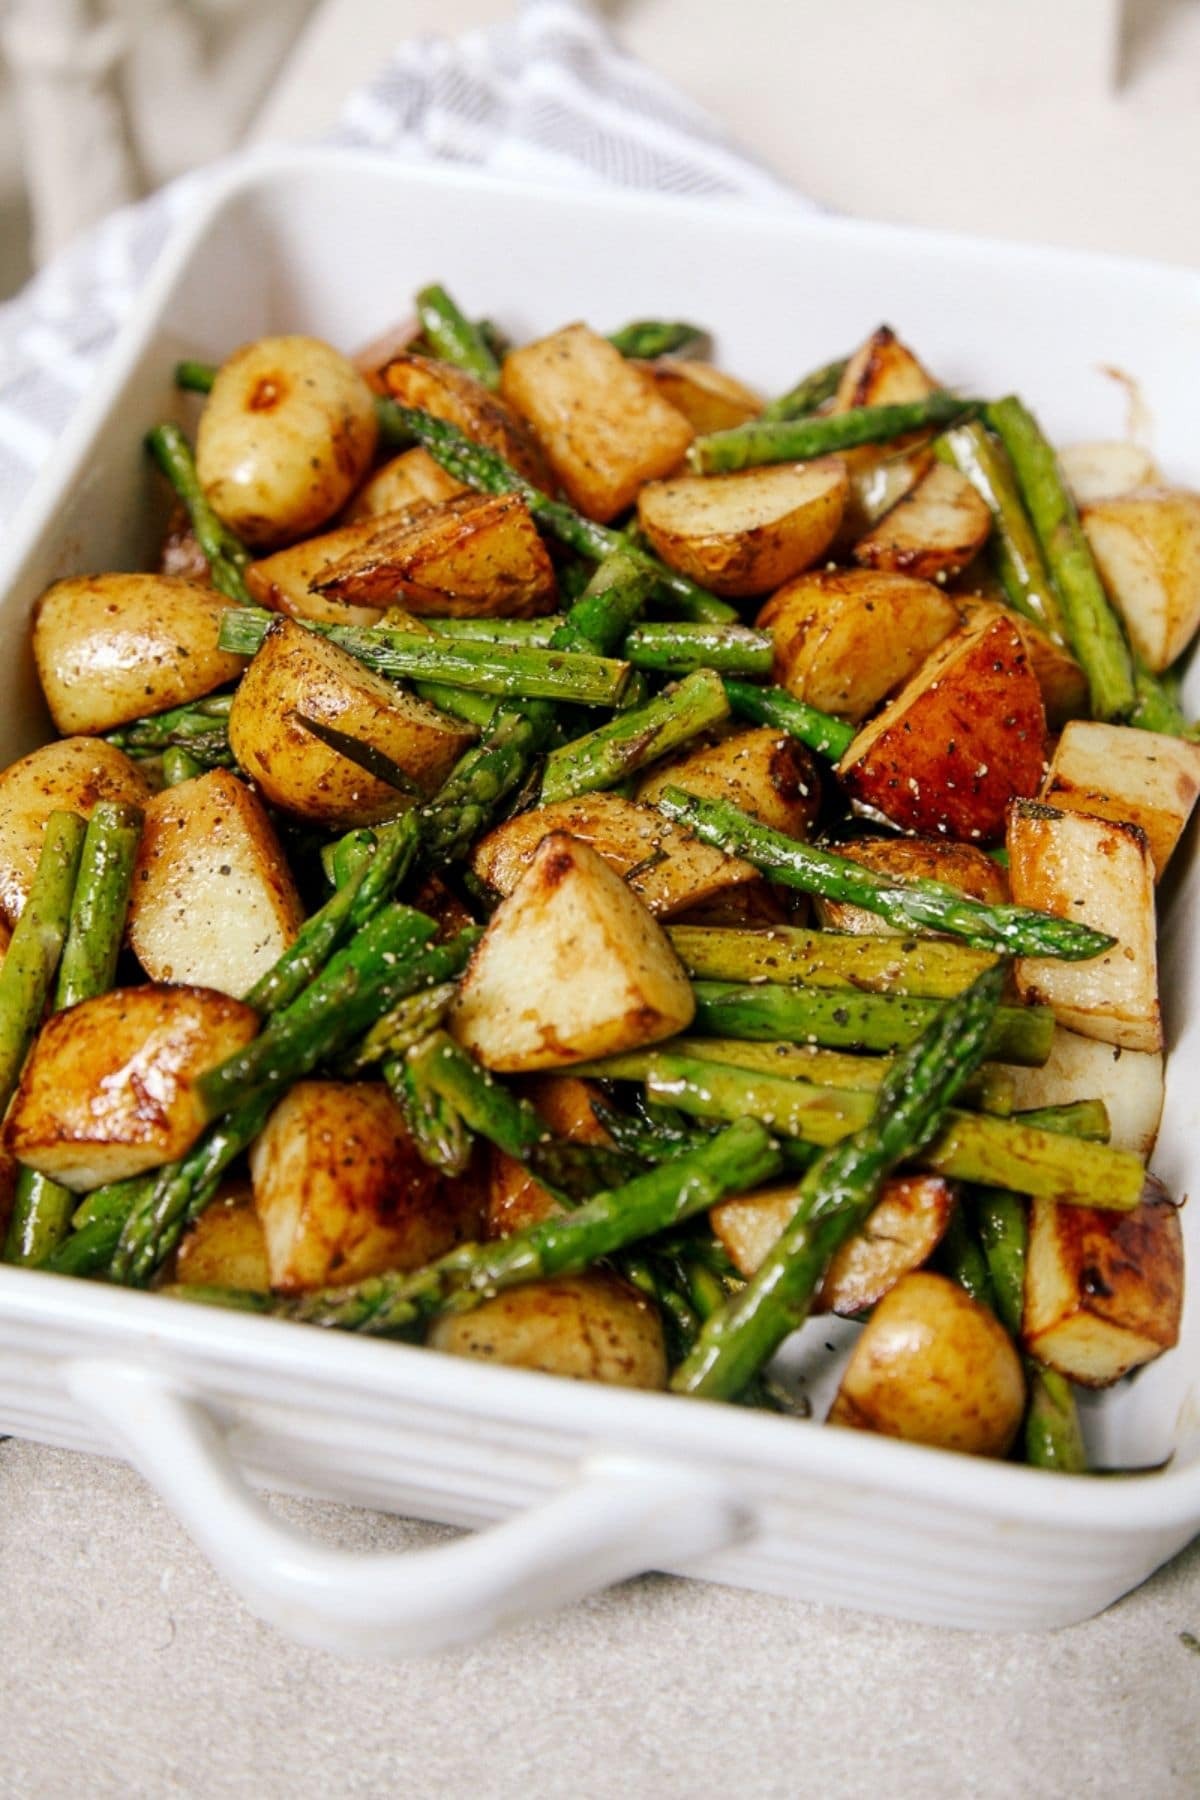 Potatoes and aspargus in white baking dish